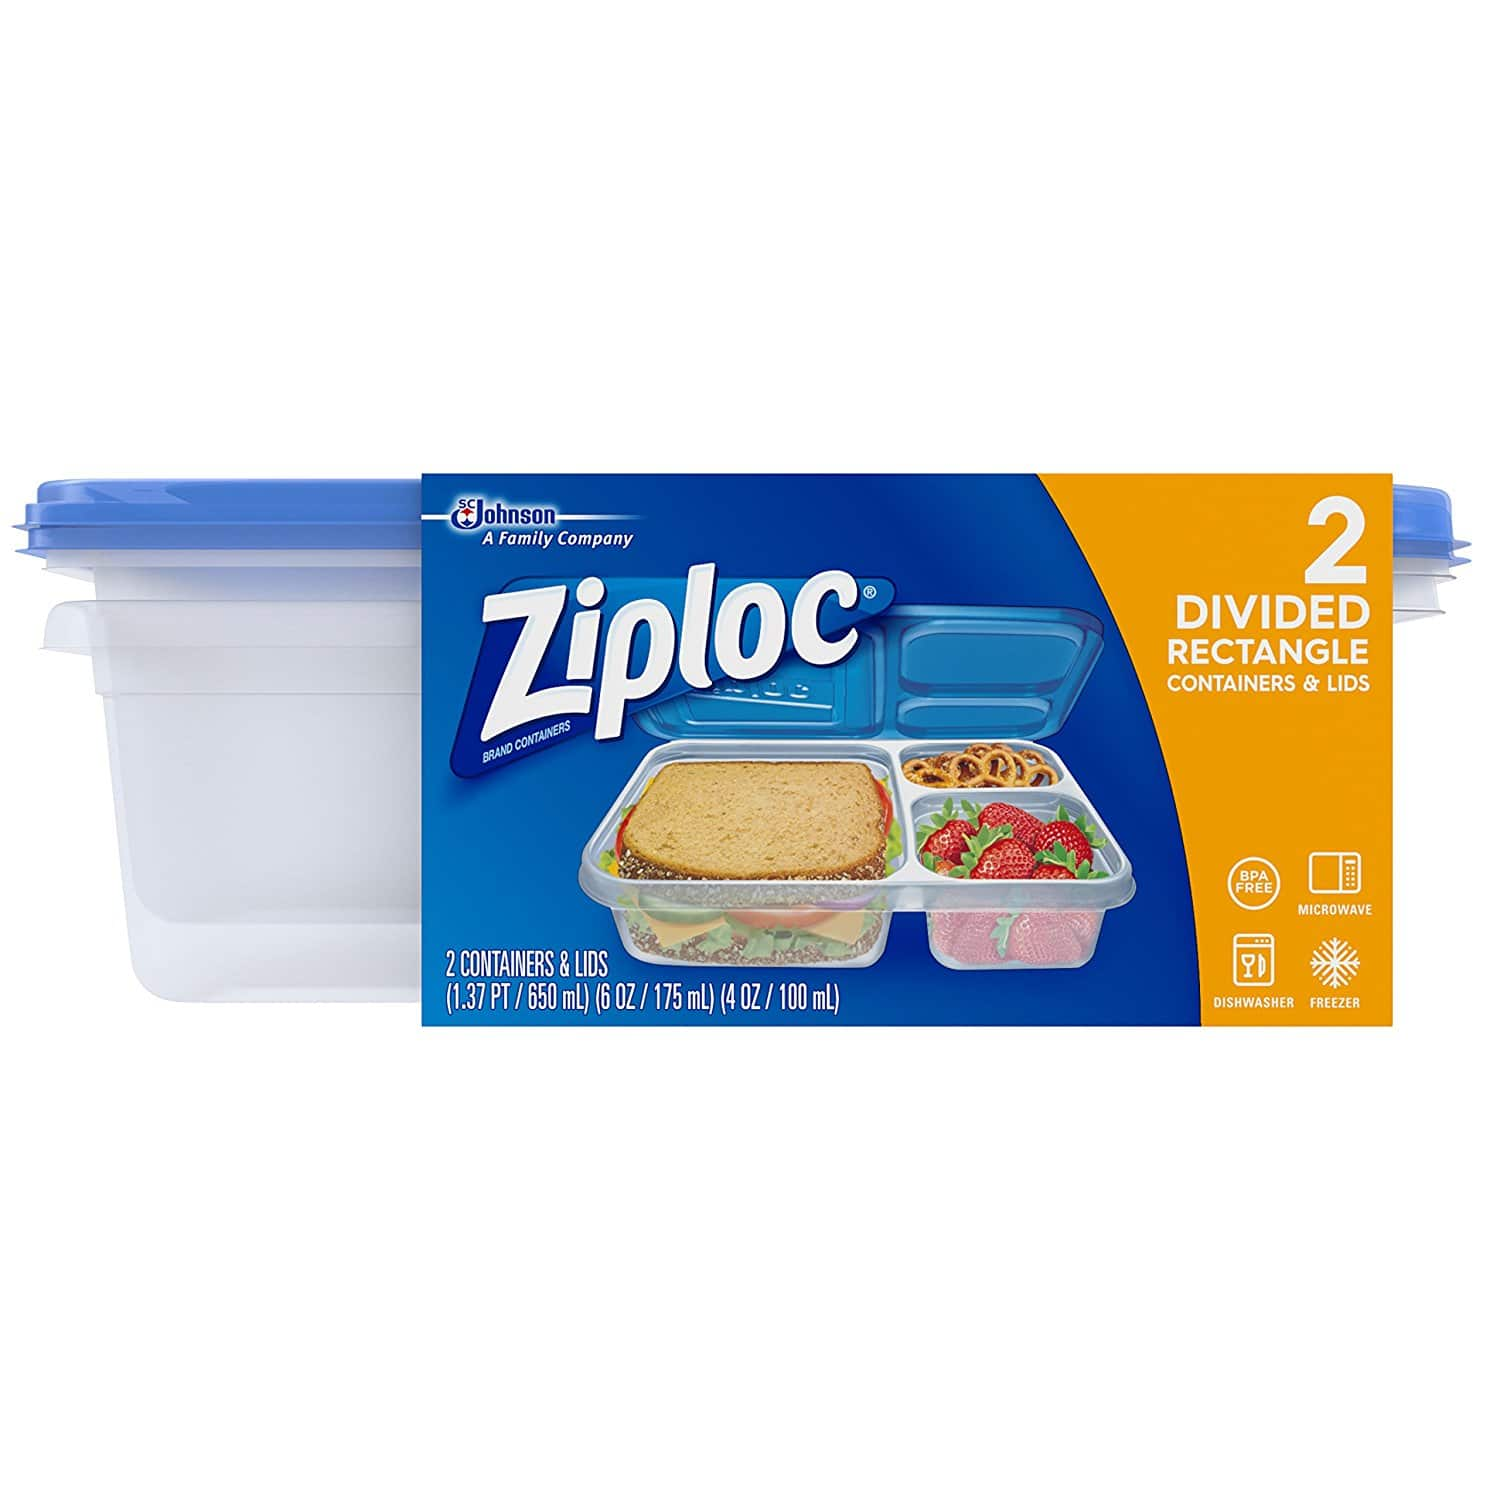 $1.98 for  Ziploc Container, Divided Rectangle, 2 Count